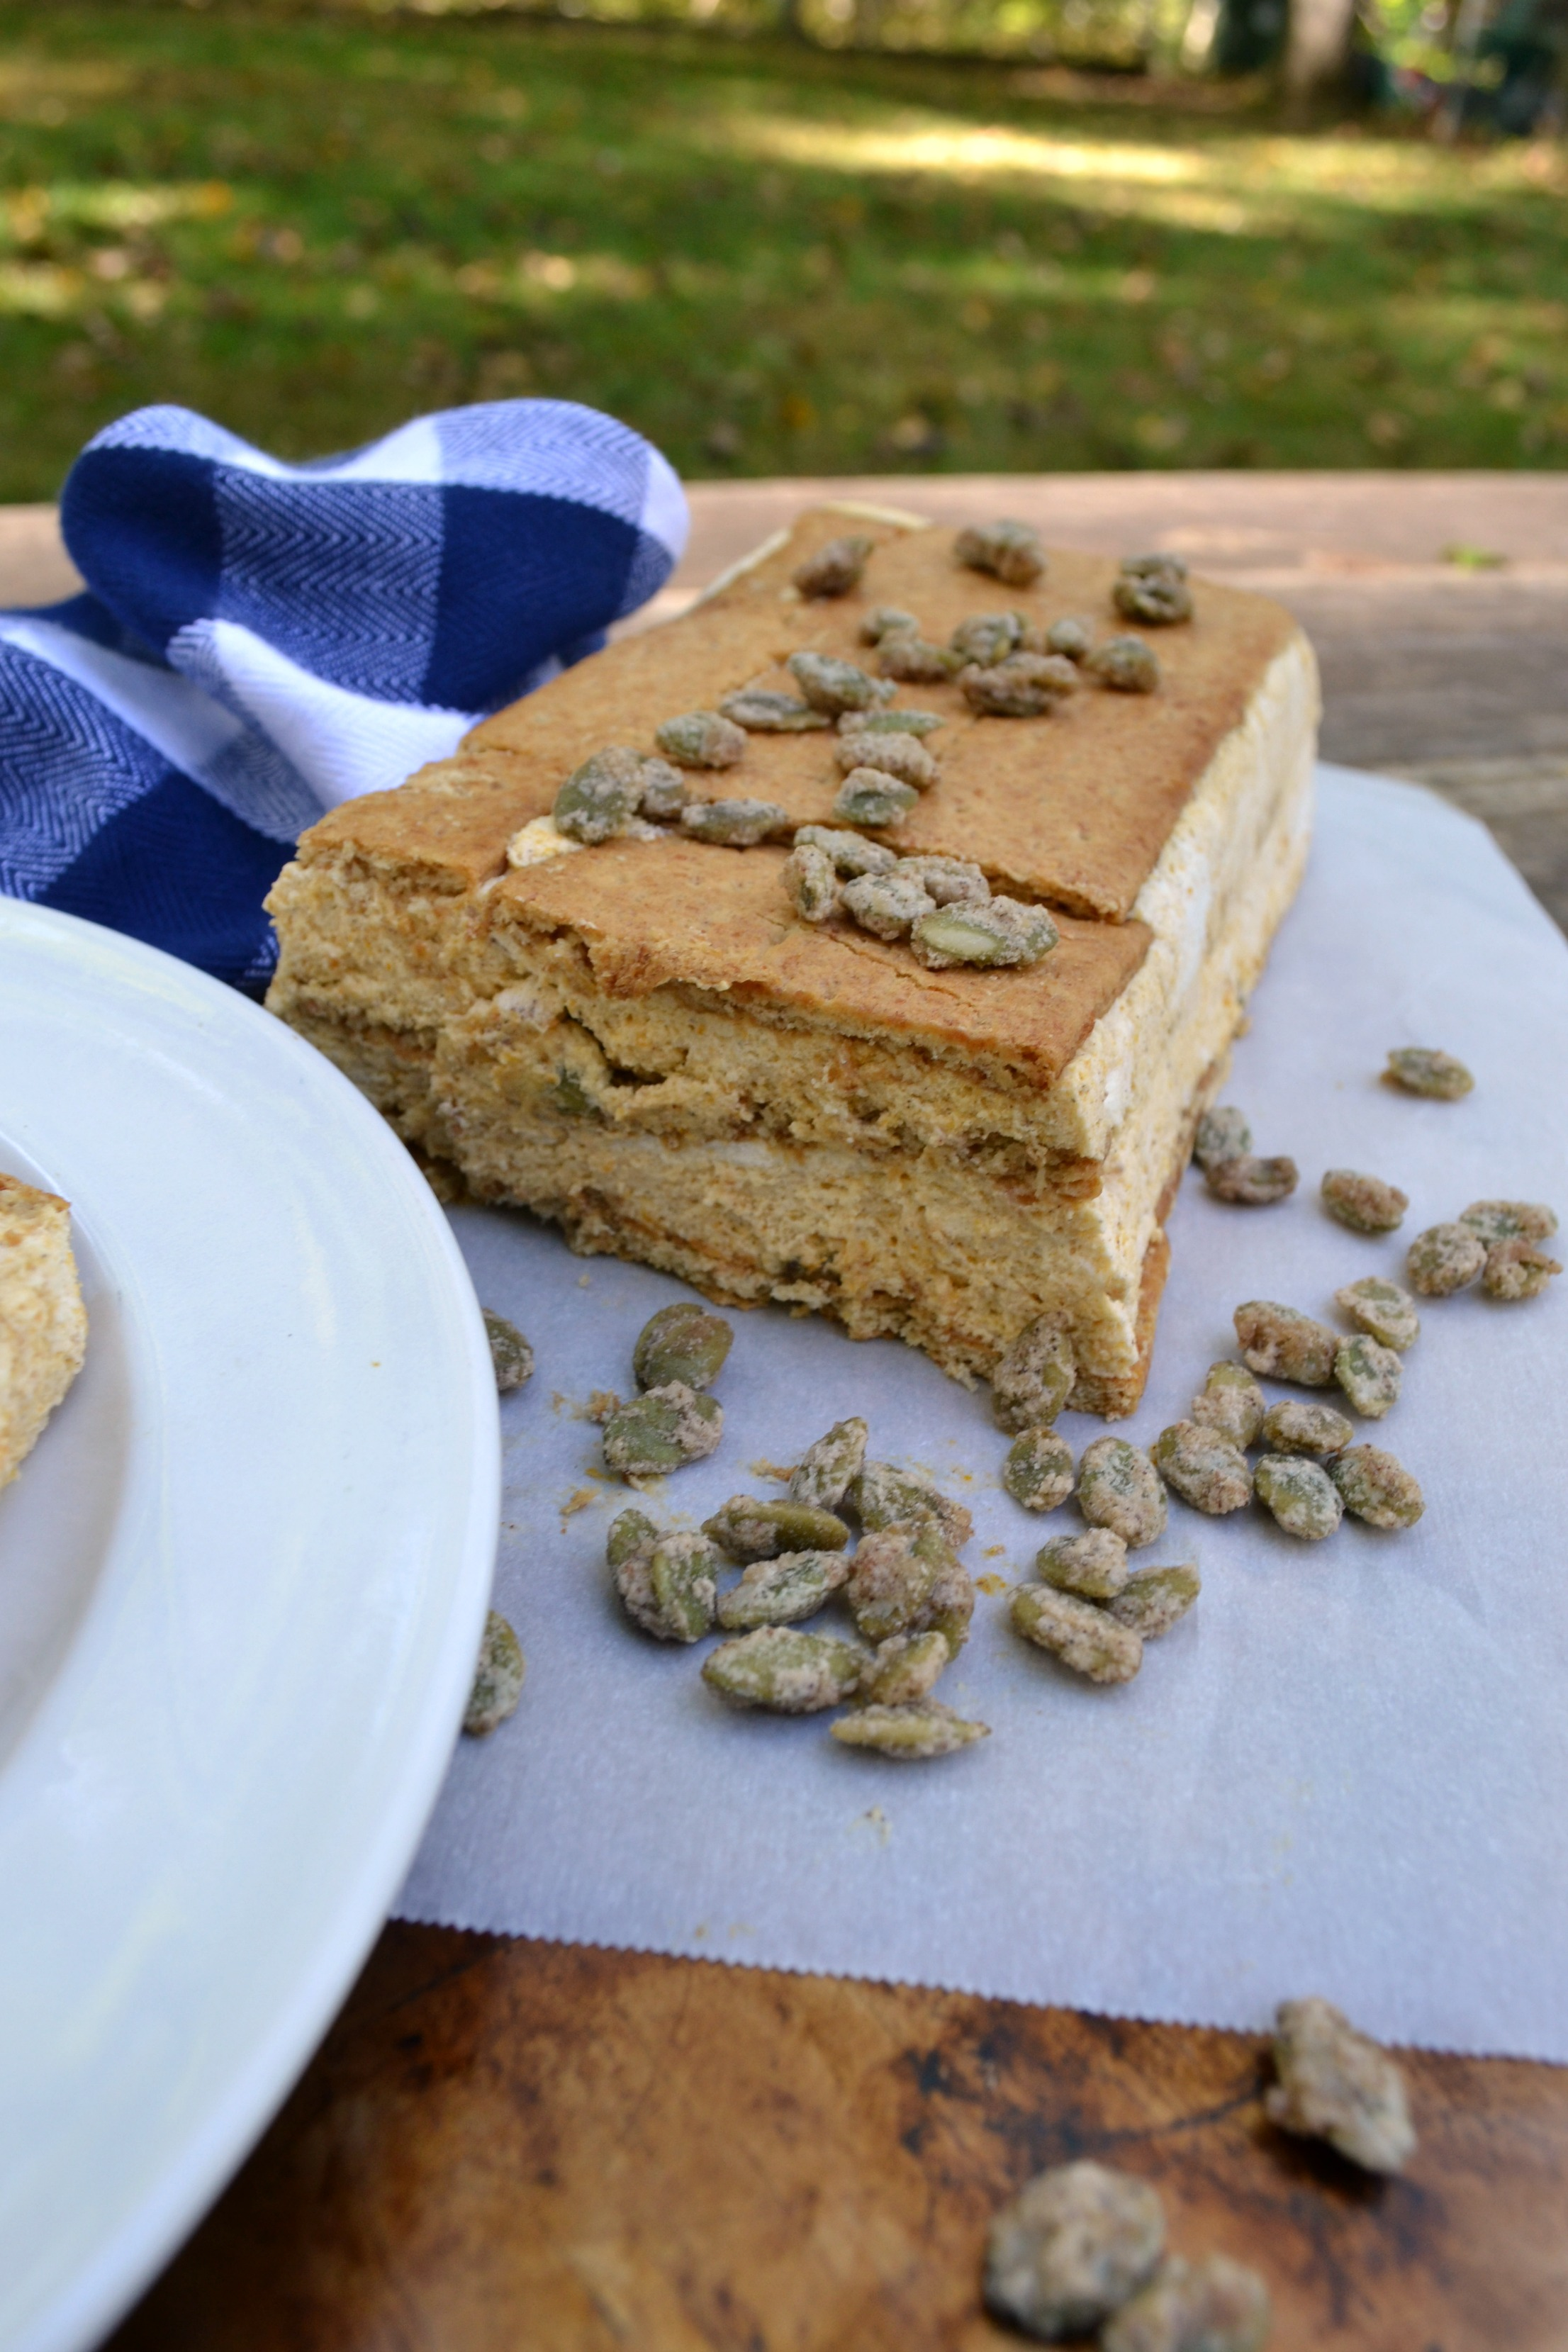 a photo of pumpkin ice box cake topped with candied pepitas on a wooden picnic table.